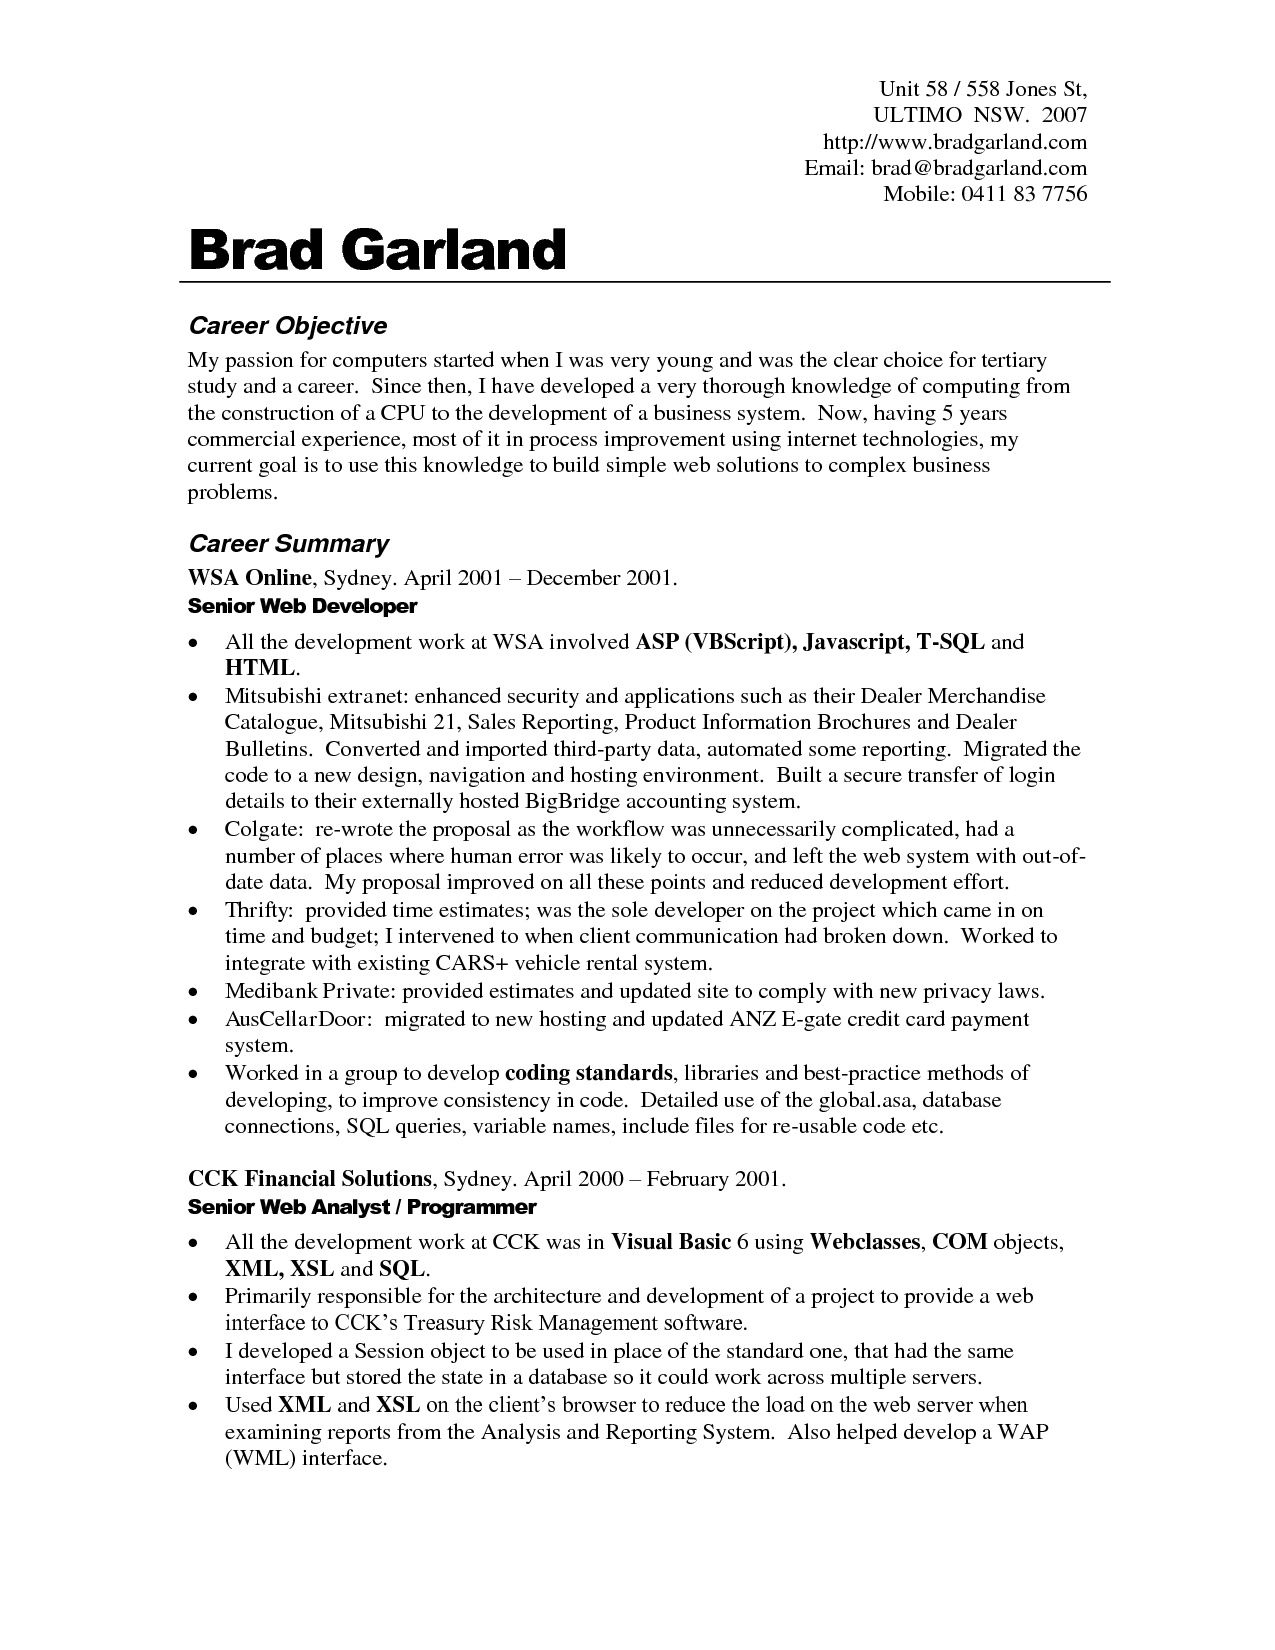 career objective resume examples for example your training goals and objectives rufoot resumes - Meaning Of Objective In Resume